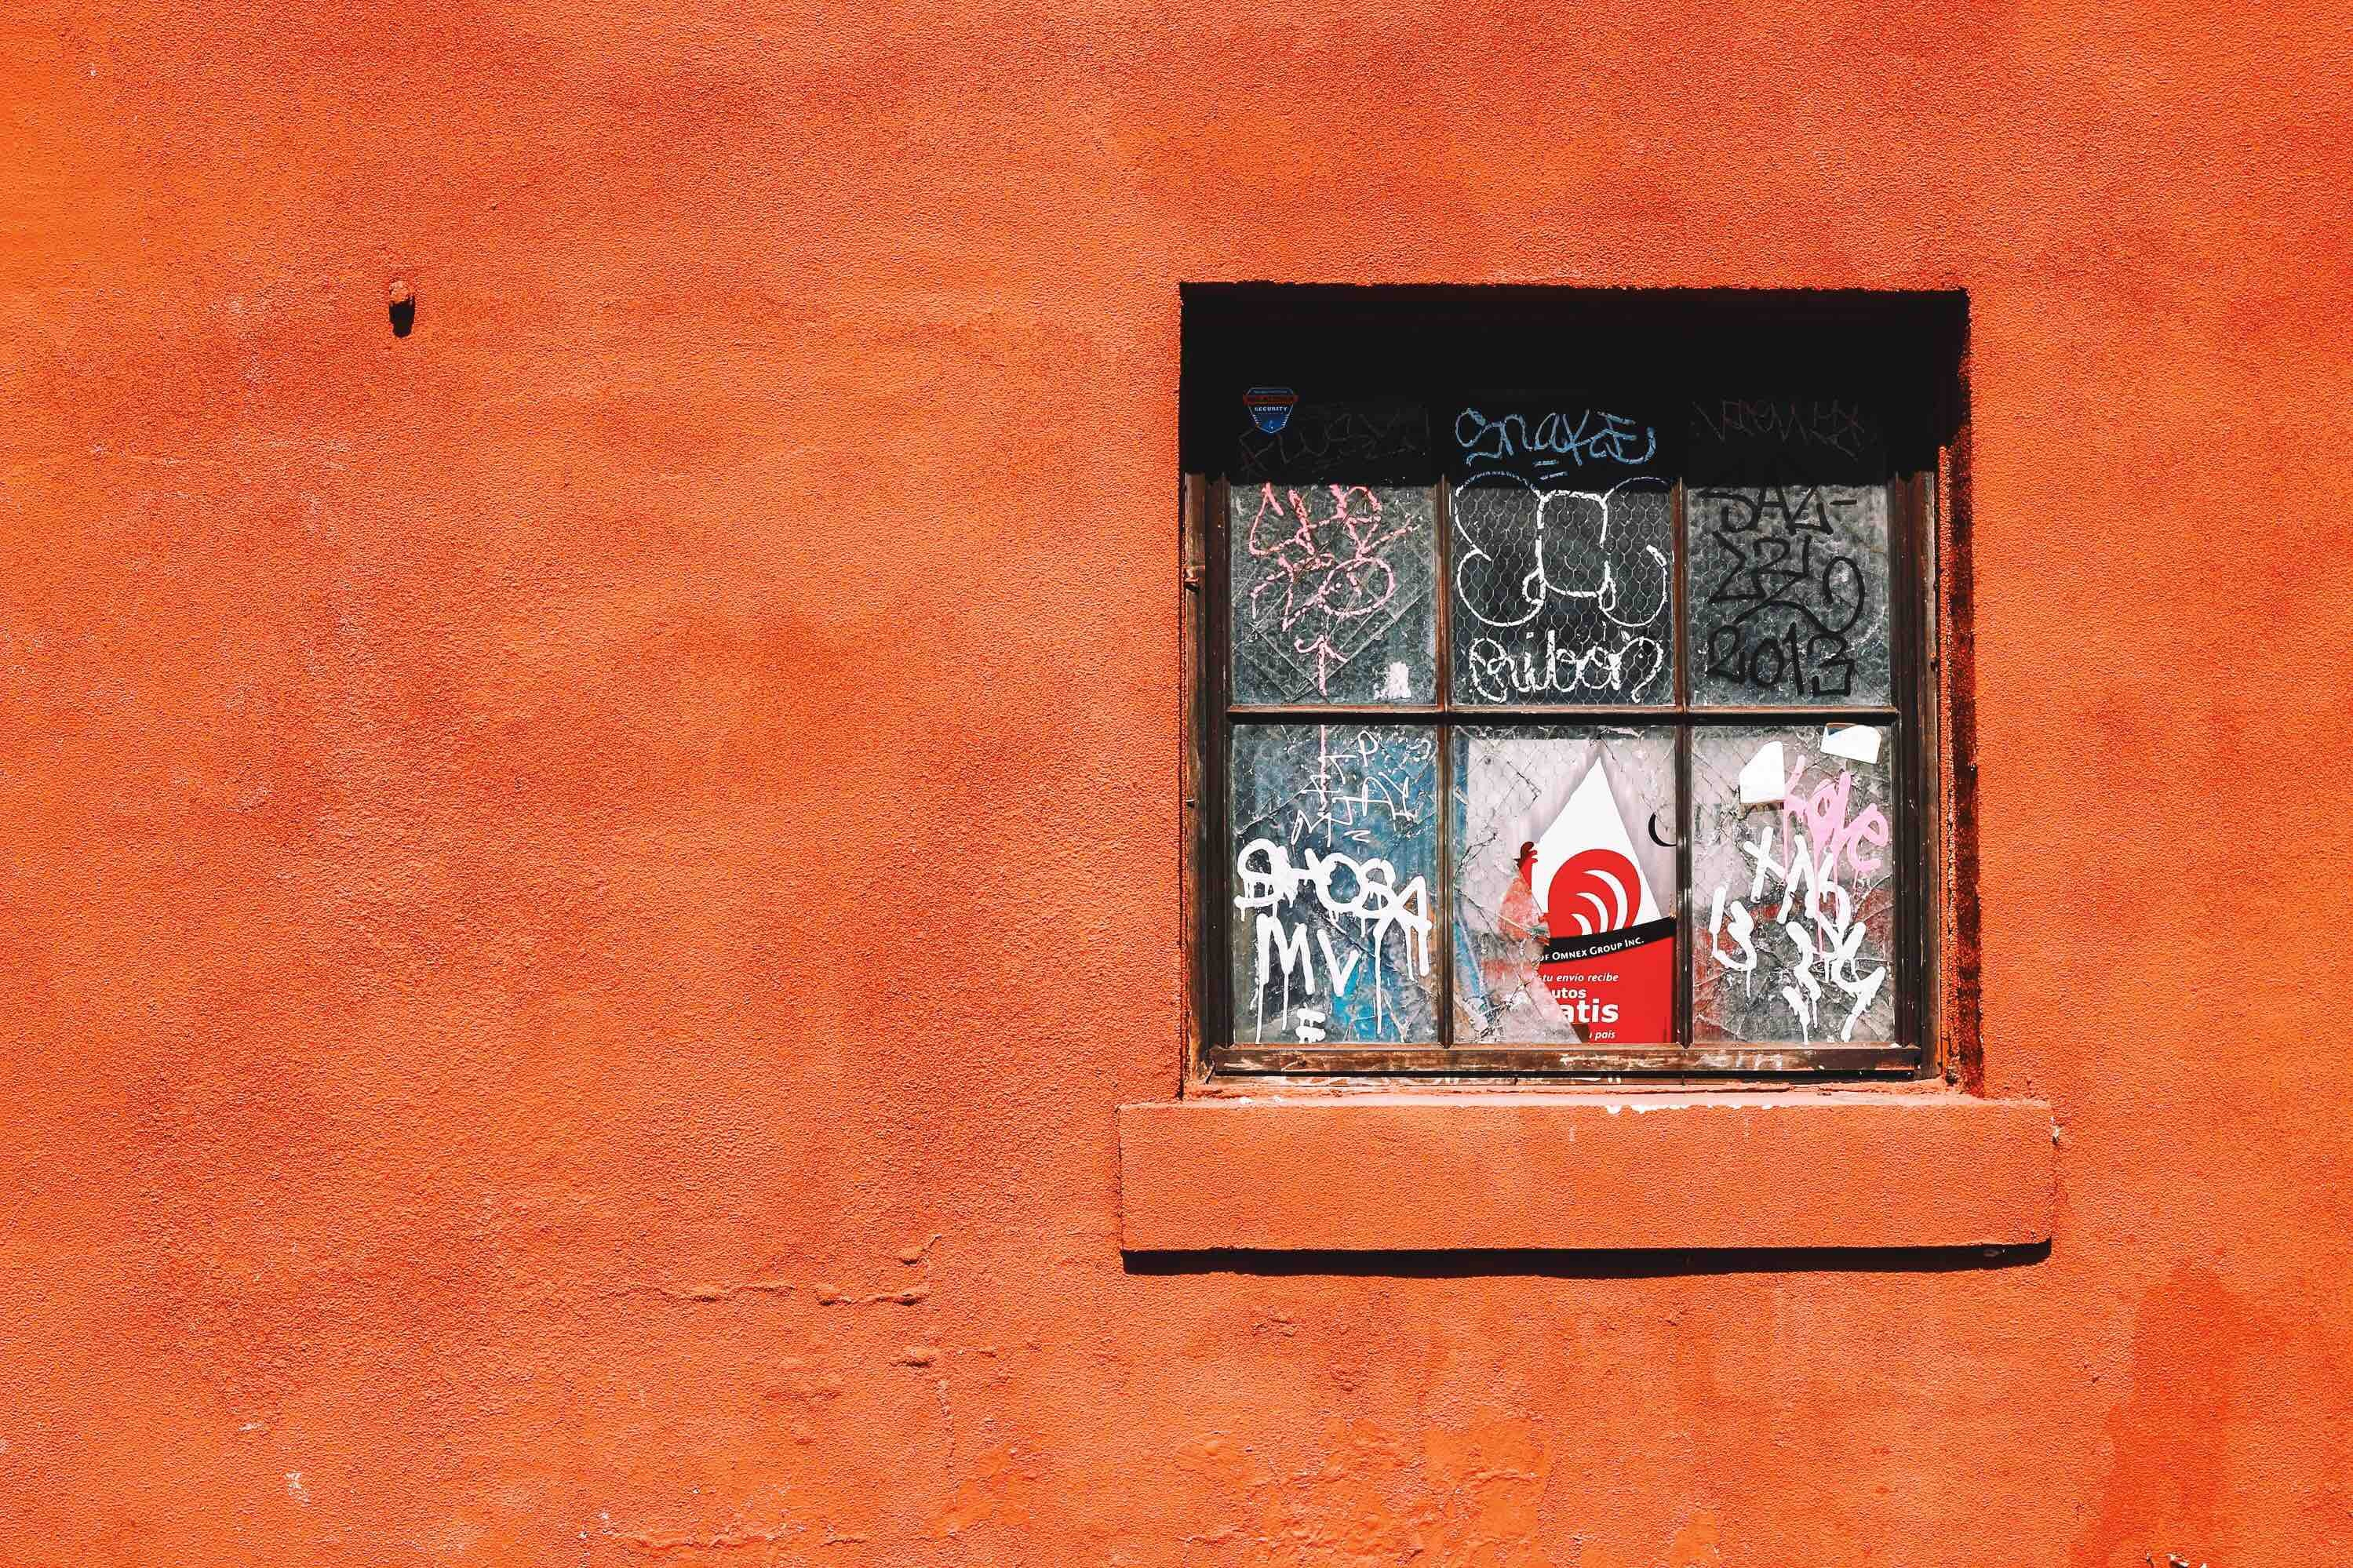 Graffiti on a broken old window in a red-painted building